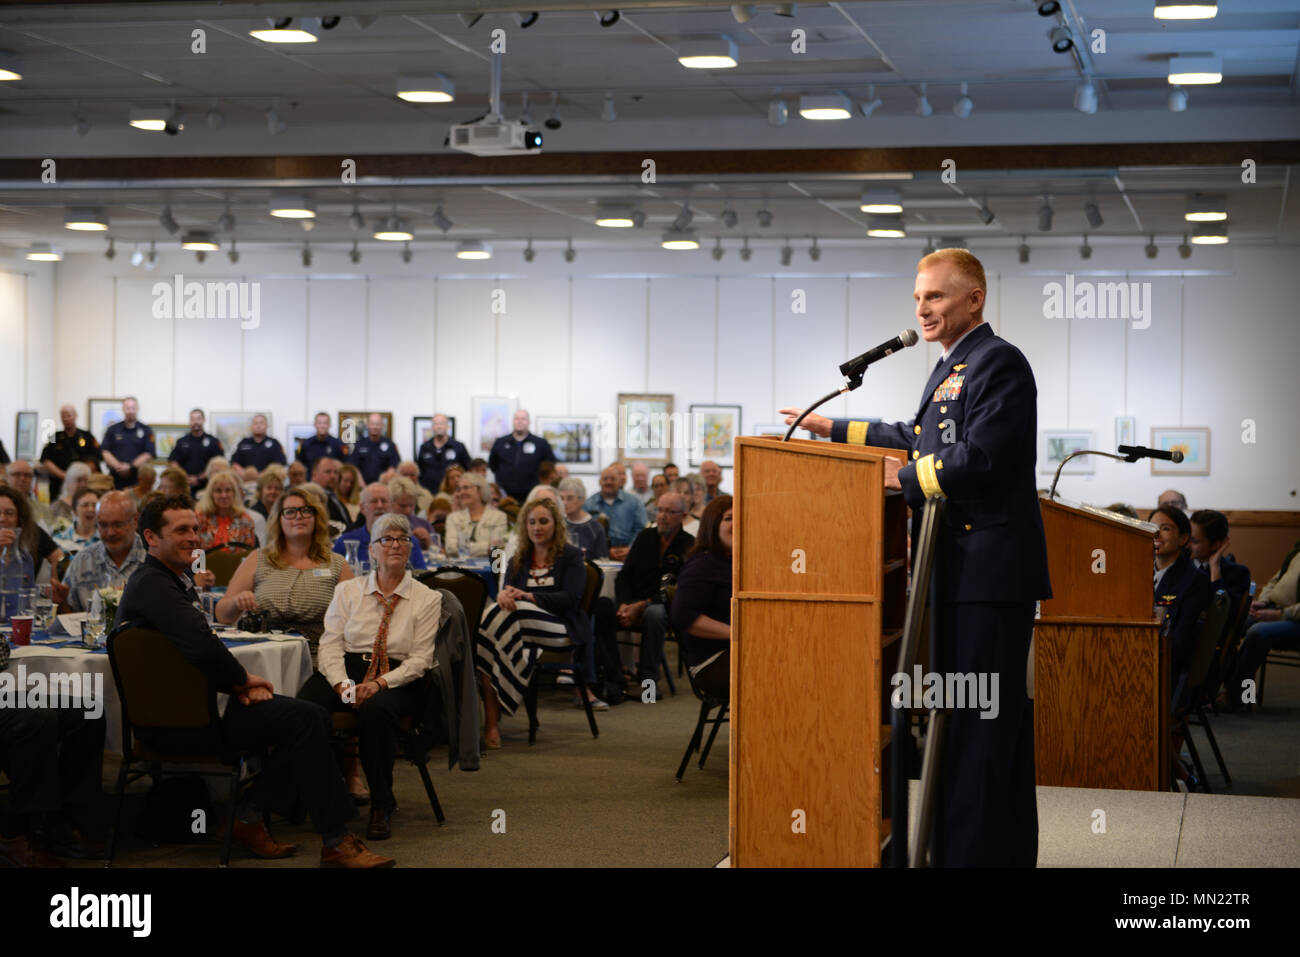 Rear Adm. David Throop, commander, Coast Guard 13th District, speaks at a Coast Guard City designation ceremony held at the Florence, Ore., Events Center, Aug. 16, 2017.    Florence became the third city in Oregon to be named a Coast Guard City and is the 24th in the country.    U.S. Coast Guard photo by Petty Officer 1st Class Levi Read. - Stock Image